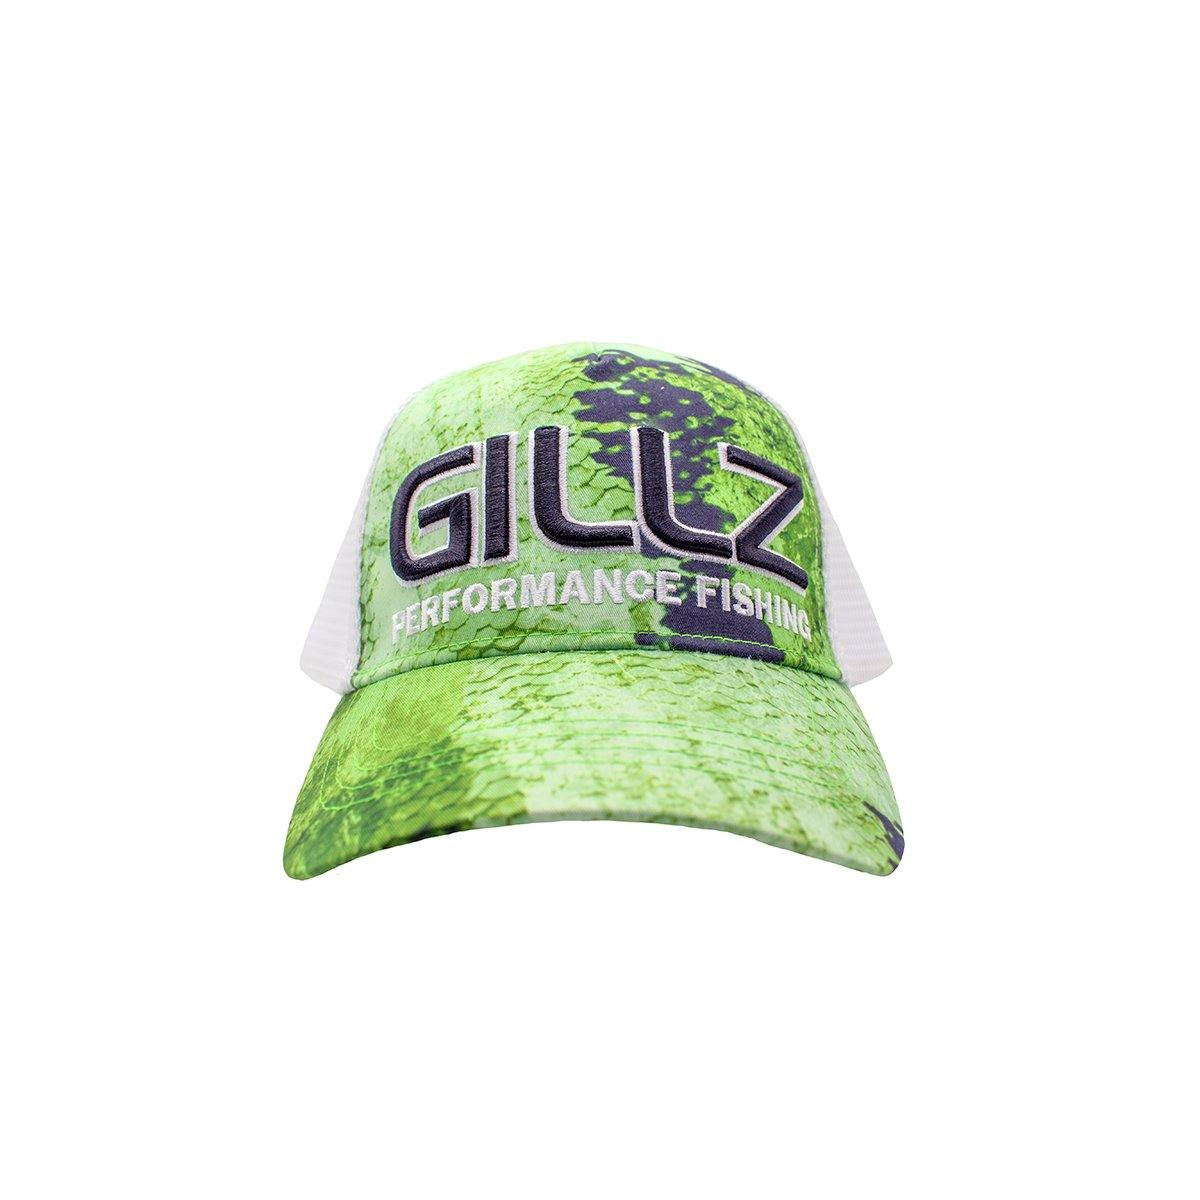 Gillz Extreme Scales Hat - Gillz